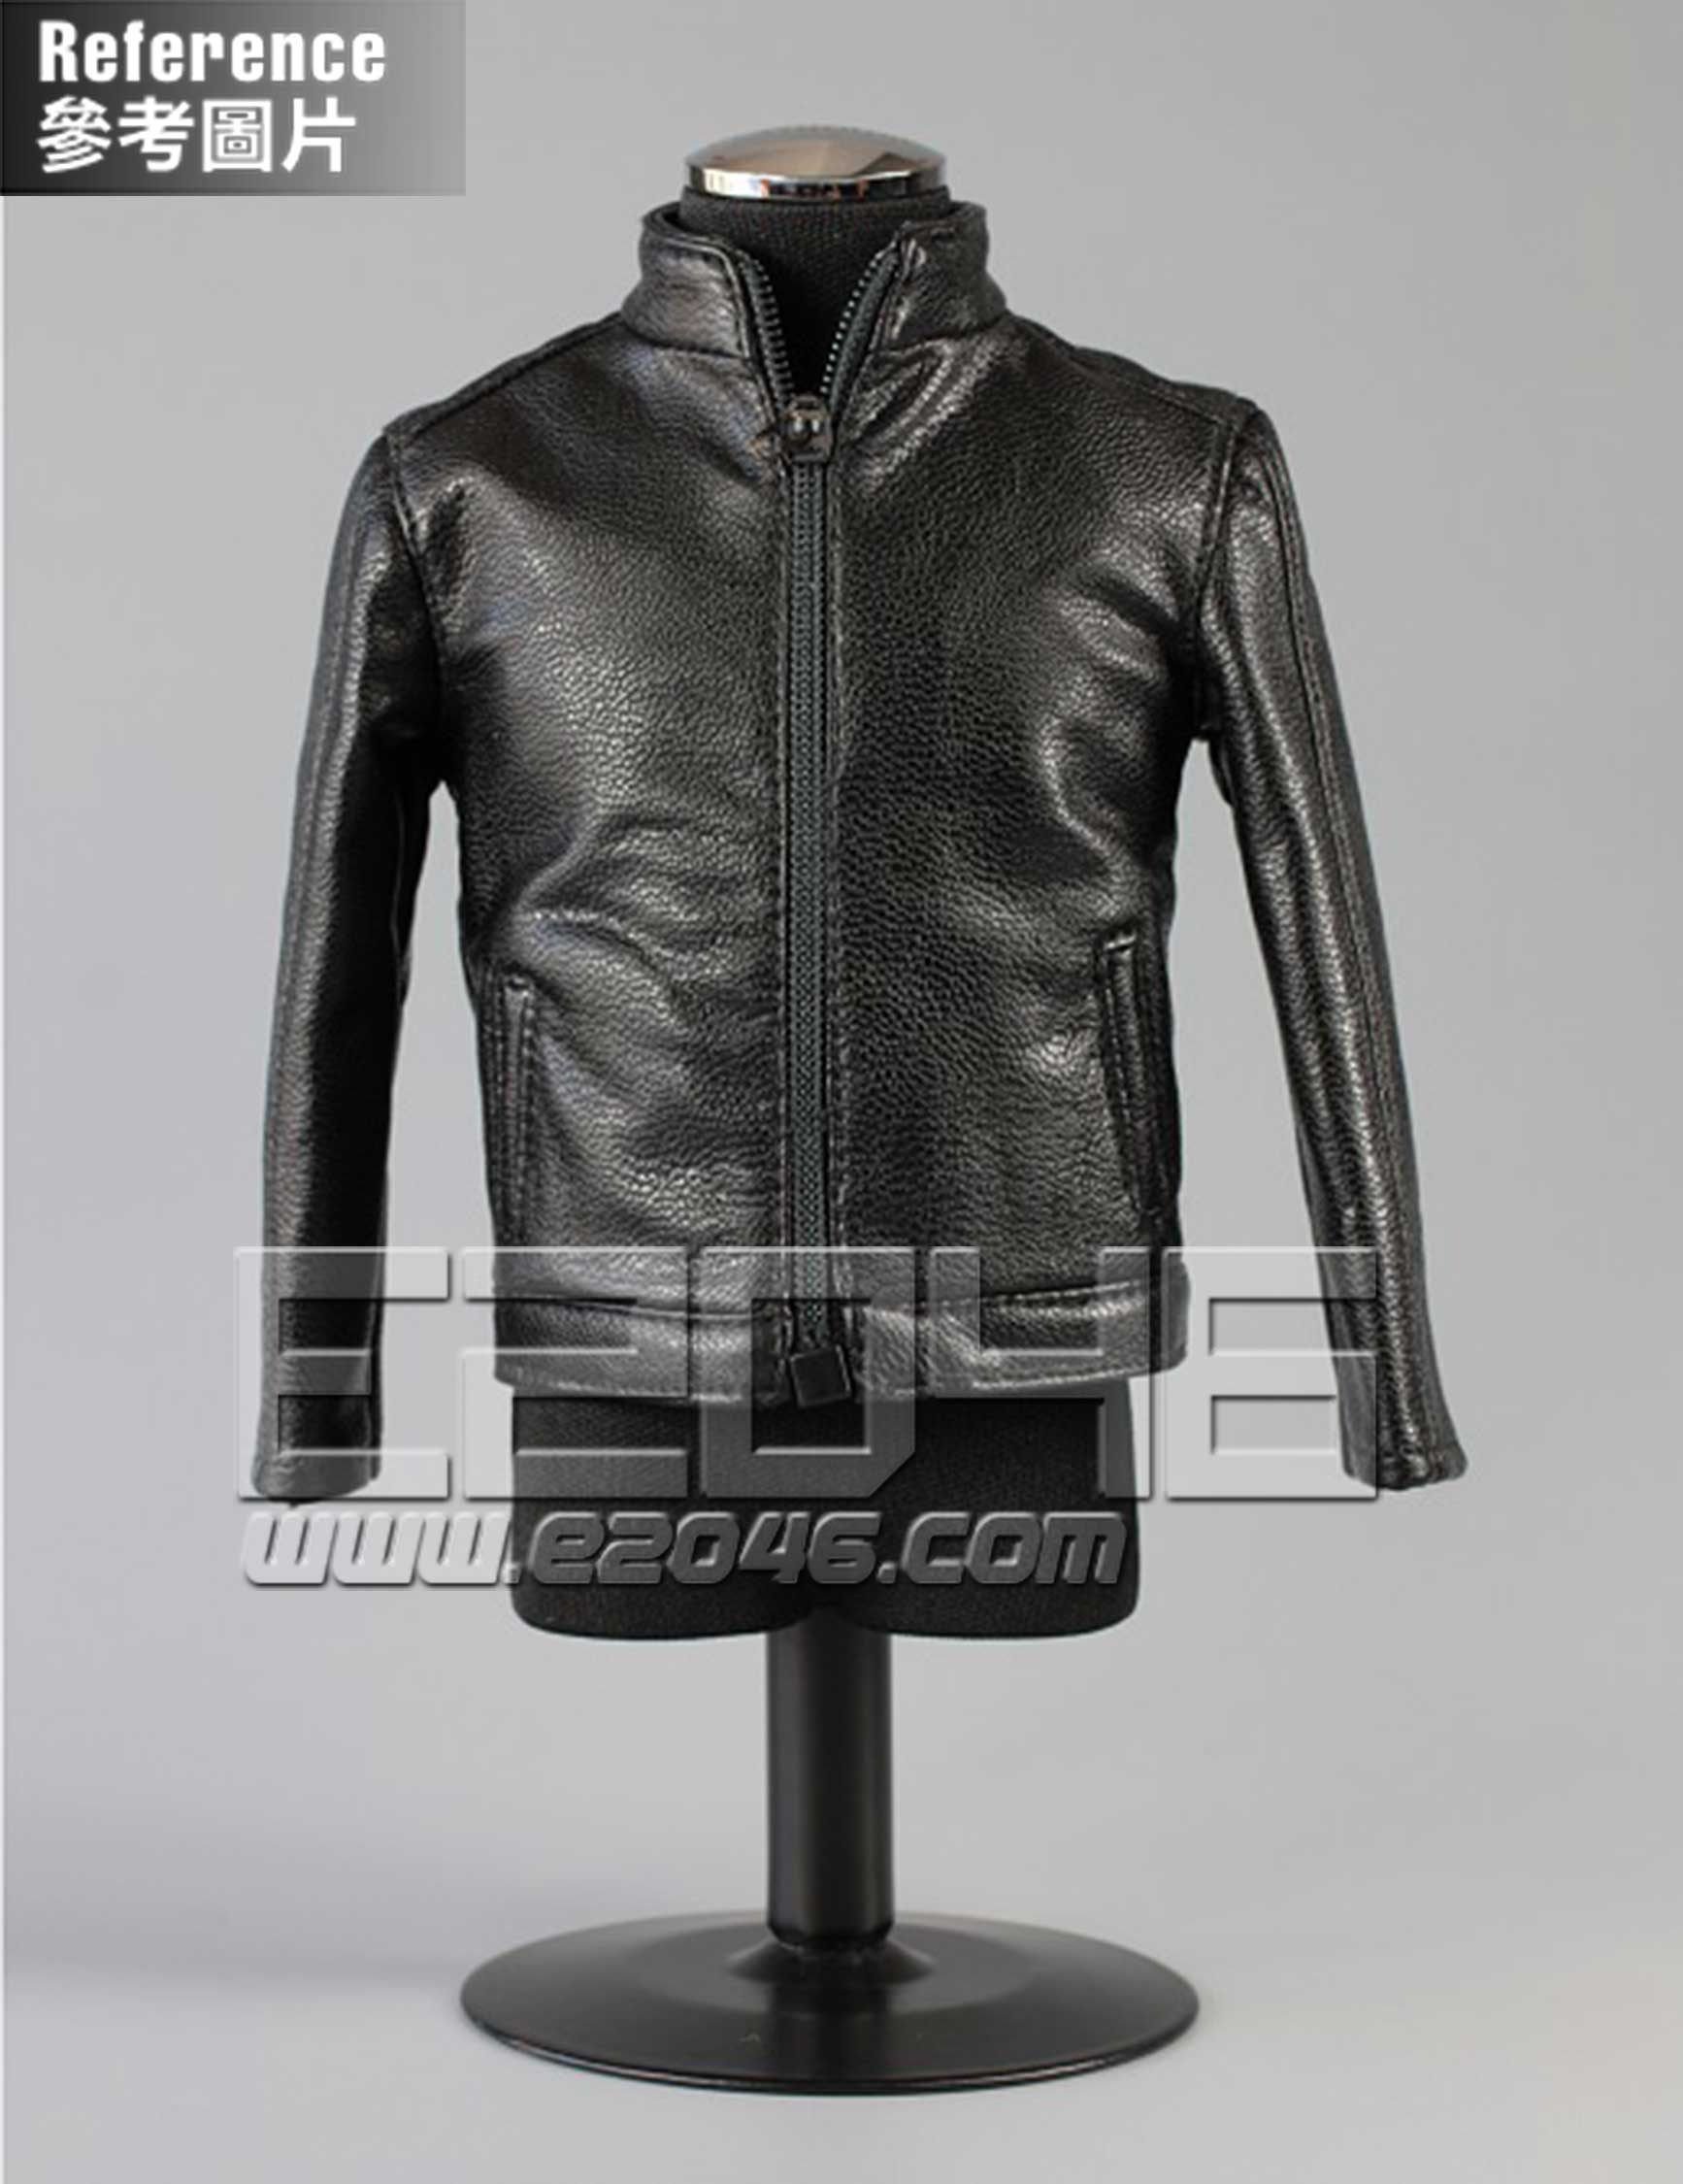 Leather jacket A (DOLL)